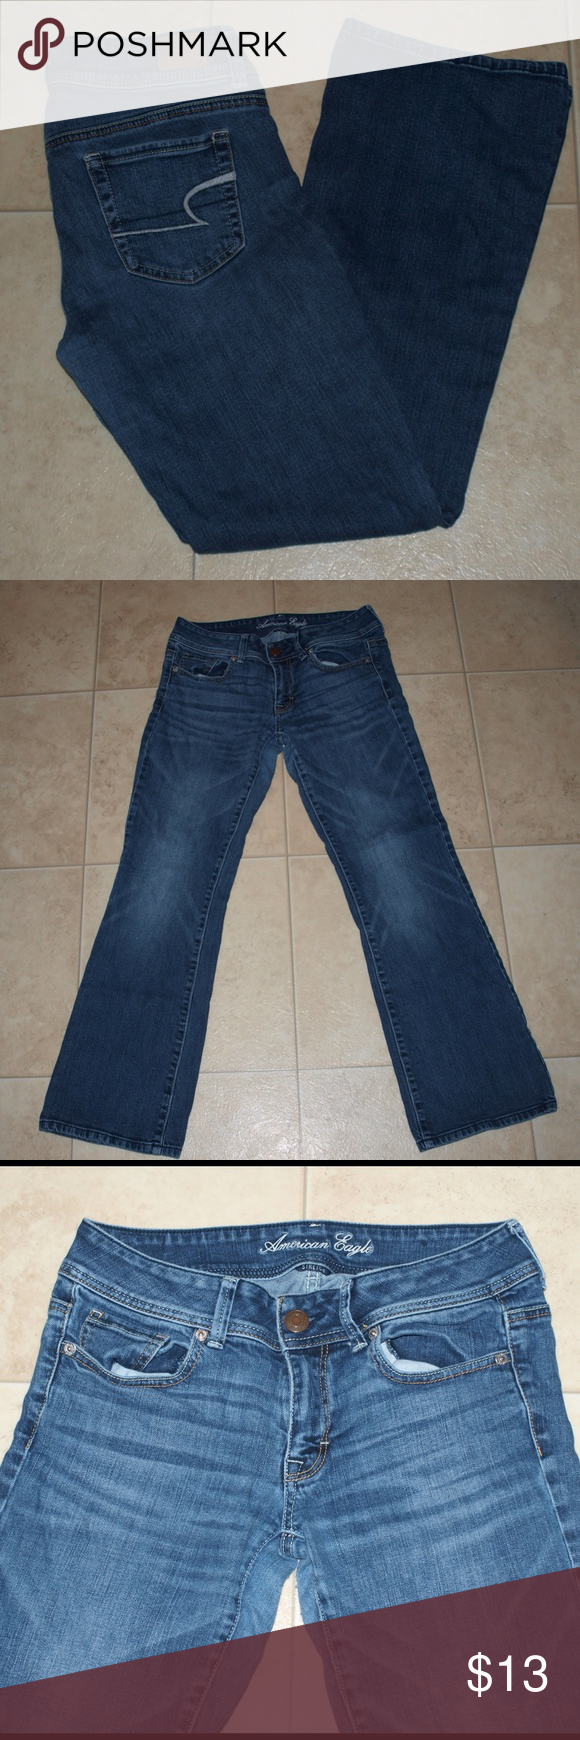 $10 AEO original boot jeans Some wear between thigh area. Super cute! Size 6 short. Waste measurement across when flat = 15 inseam = 28  ✔The price in the beginning of the title of my listings is the bundle price. These prices are not valid through the make a bundle feature. A new listing must be made by me. These bundle orders must be over $15. Ask me about more details if interested.  ✔No trades. American Eagle Outfitters Jeans